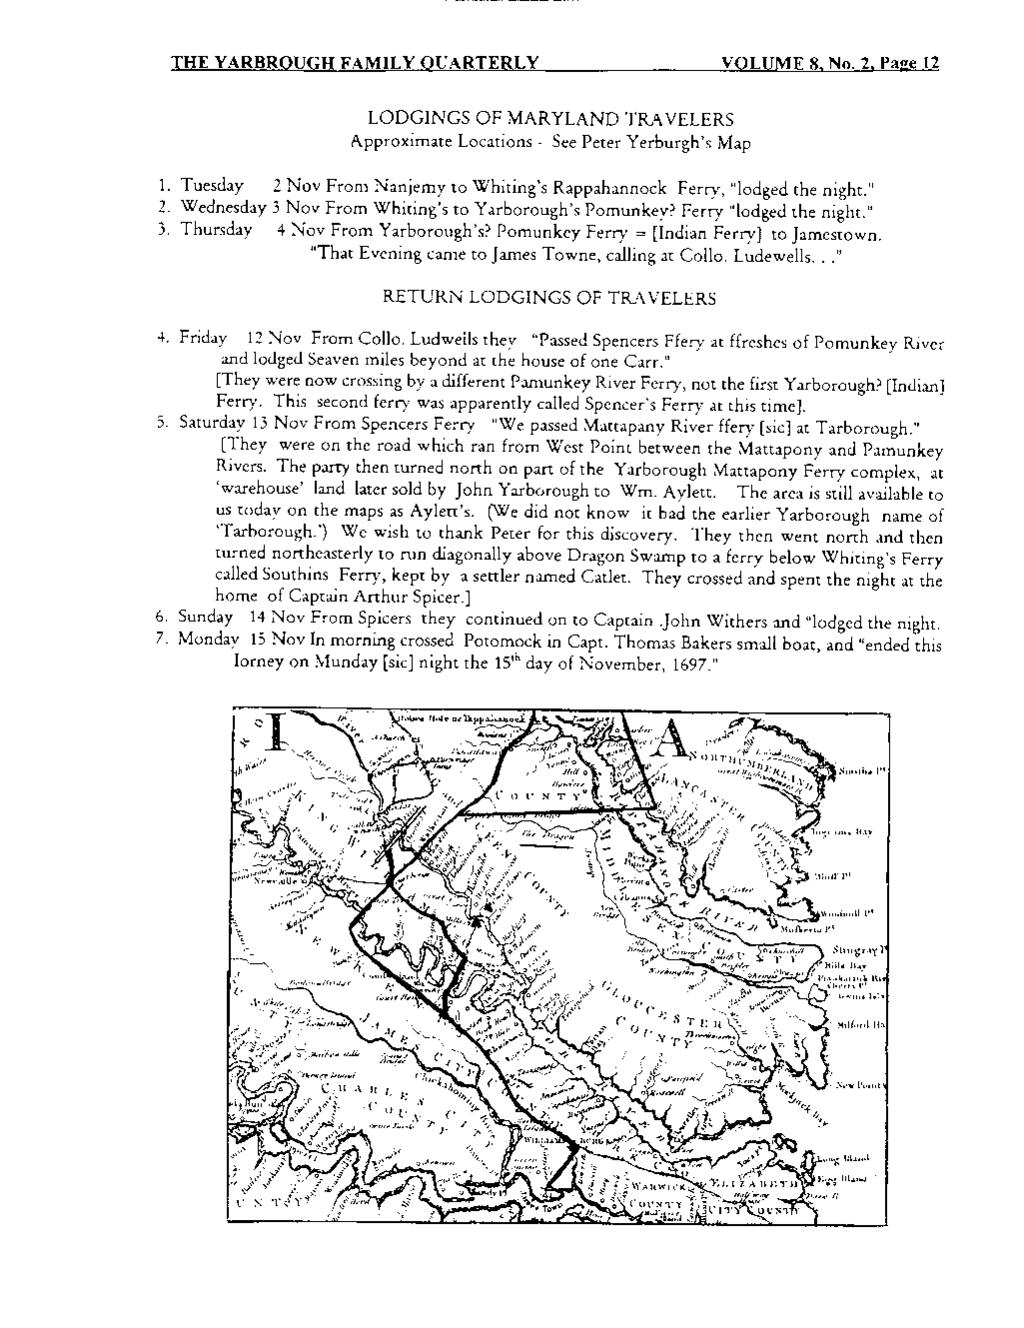 THE YARBROUGH FAMILY QUARTERLY VOLUME 8, No. 2. Page 12 LODGINGS OF MARYLAND TRAVELERS Approximate Locations- See Peter Yerburgh's Map 1.